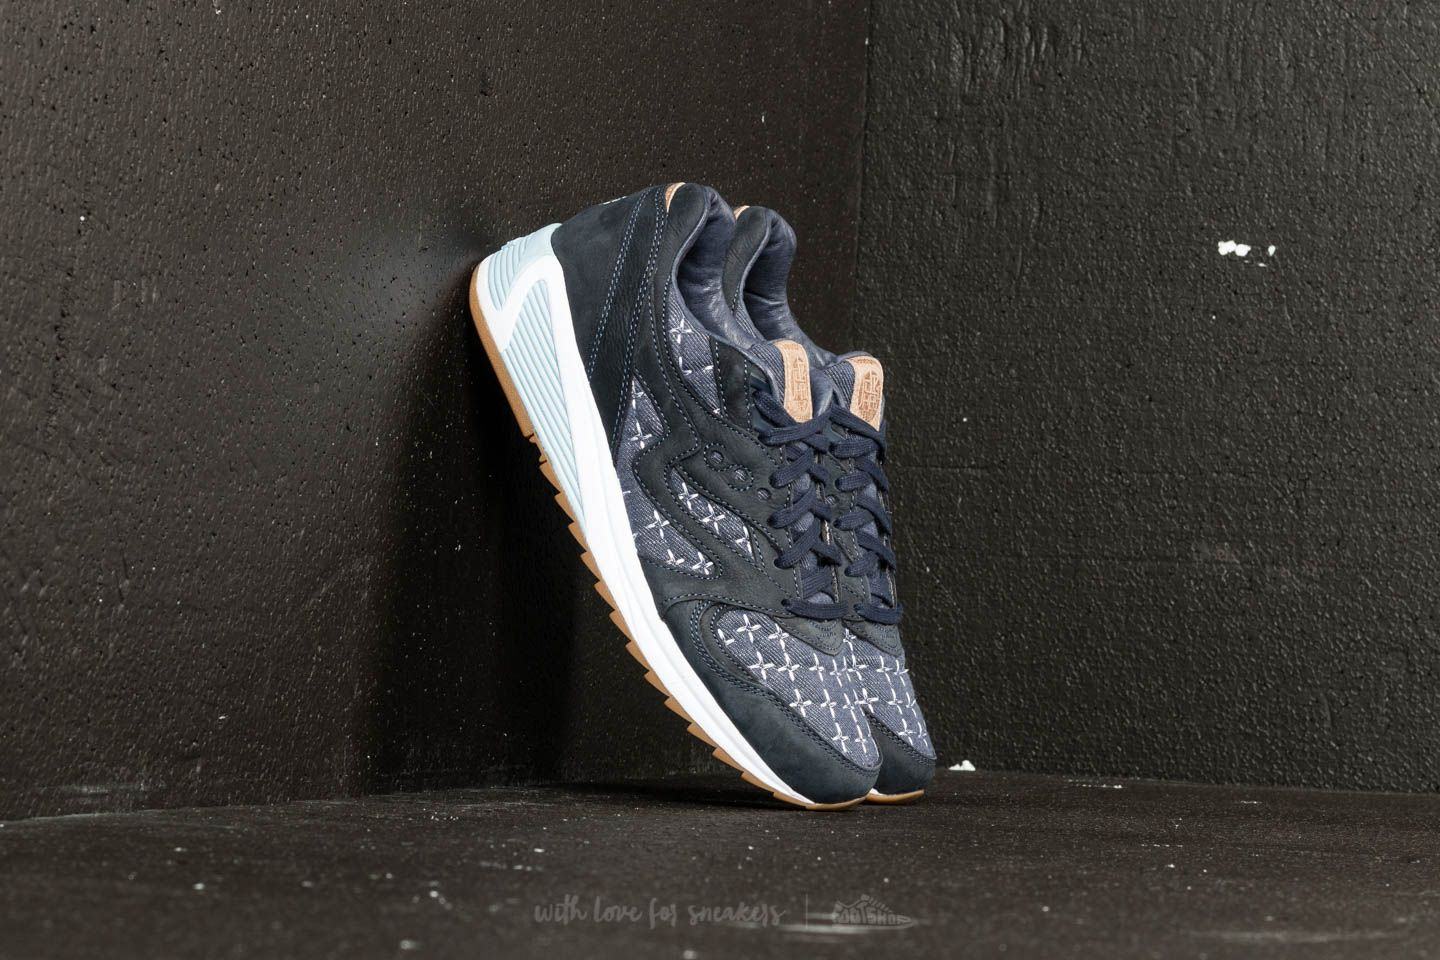 Saucony x Up There Store GRID 8000